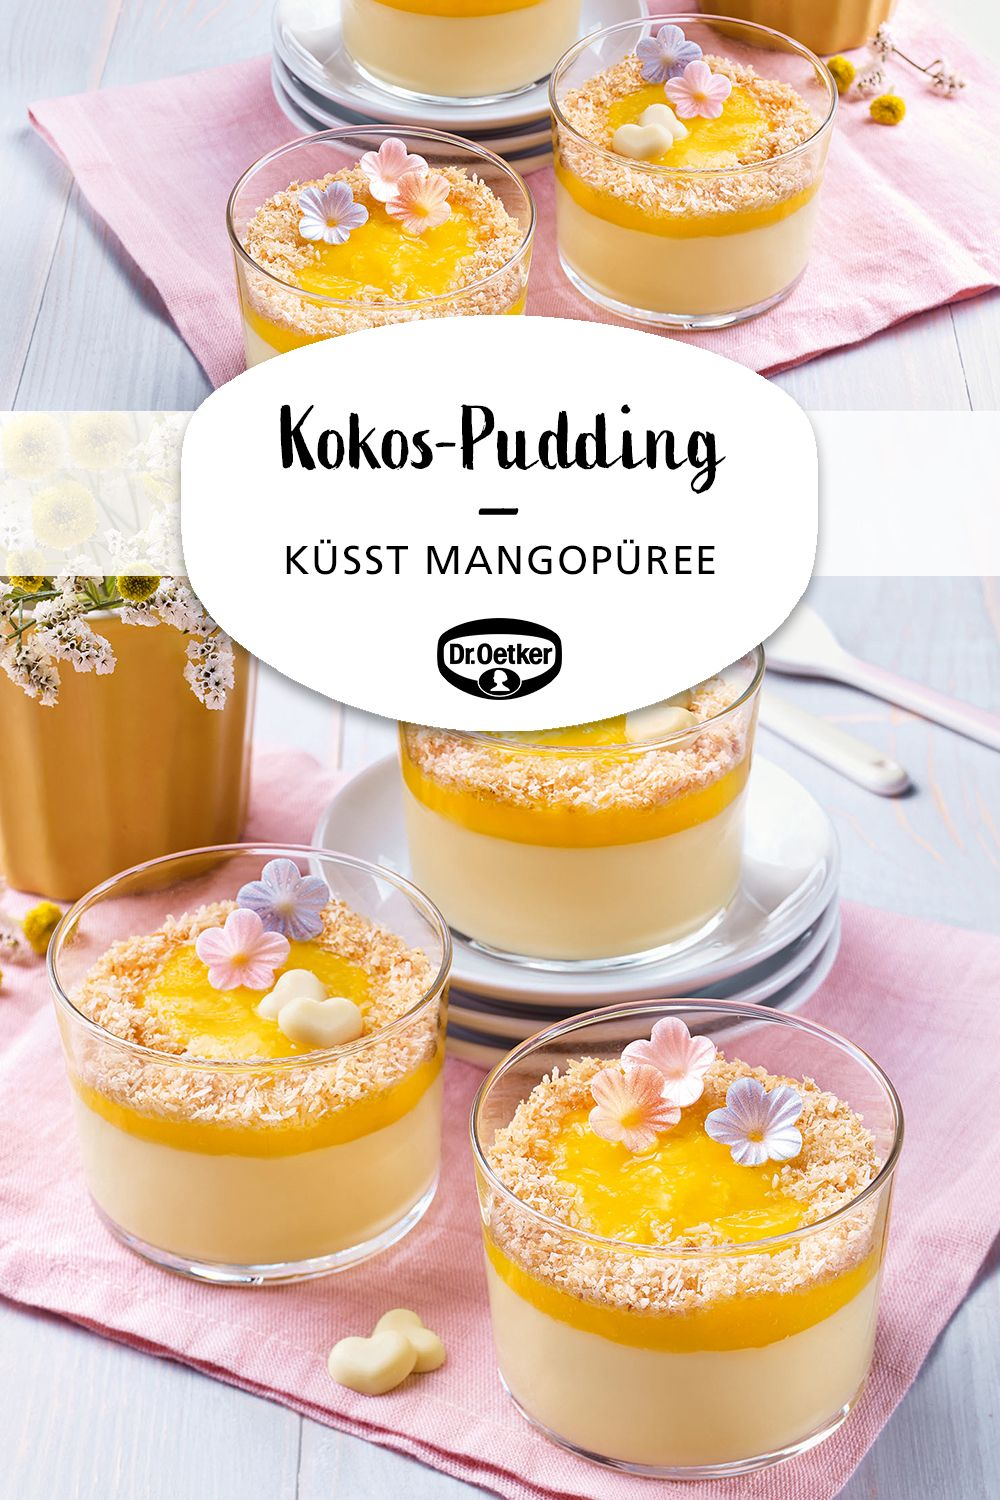 Photo of Coconut pudding kisses mango puree